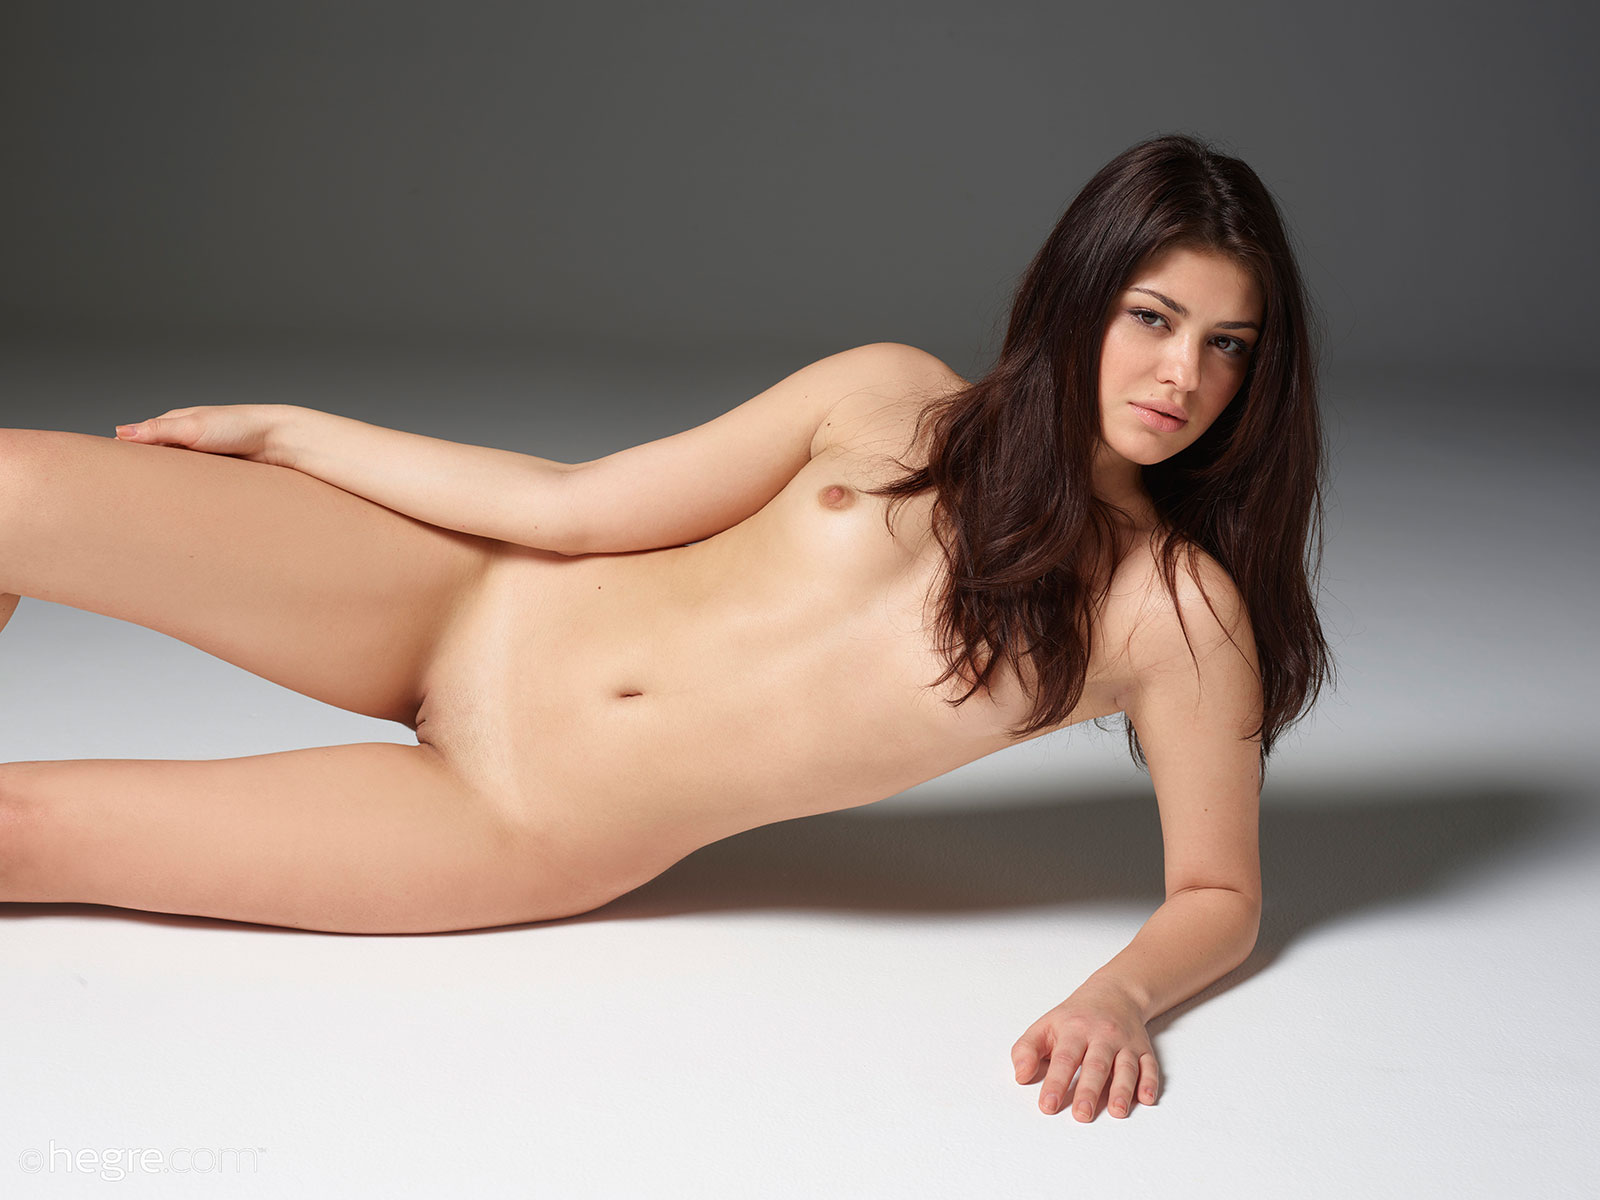 Hegre-art top model nude